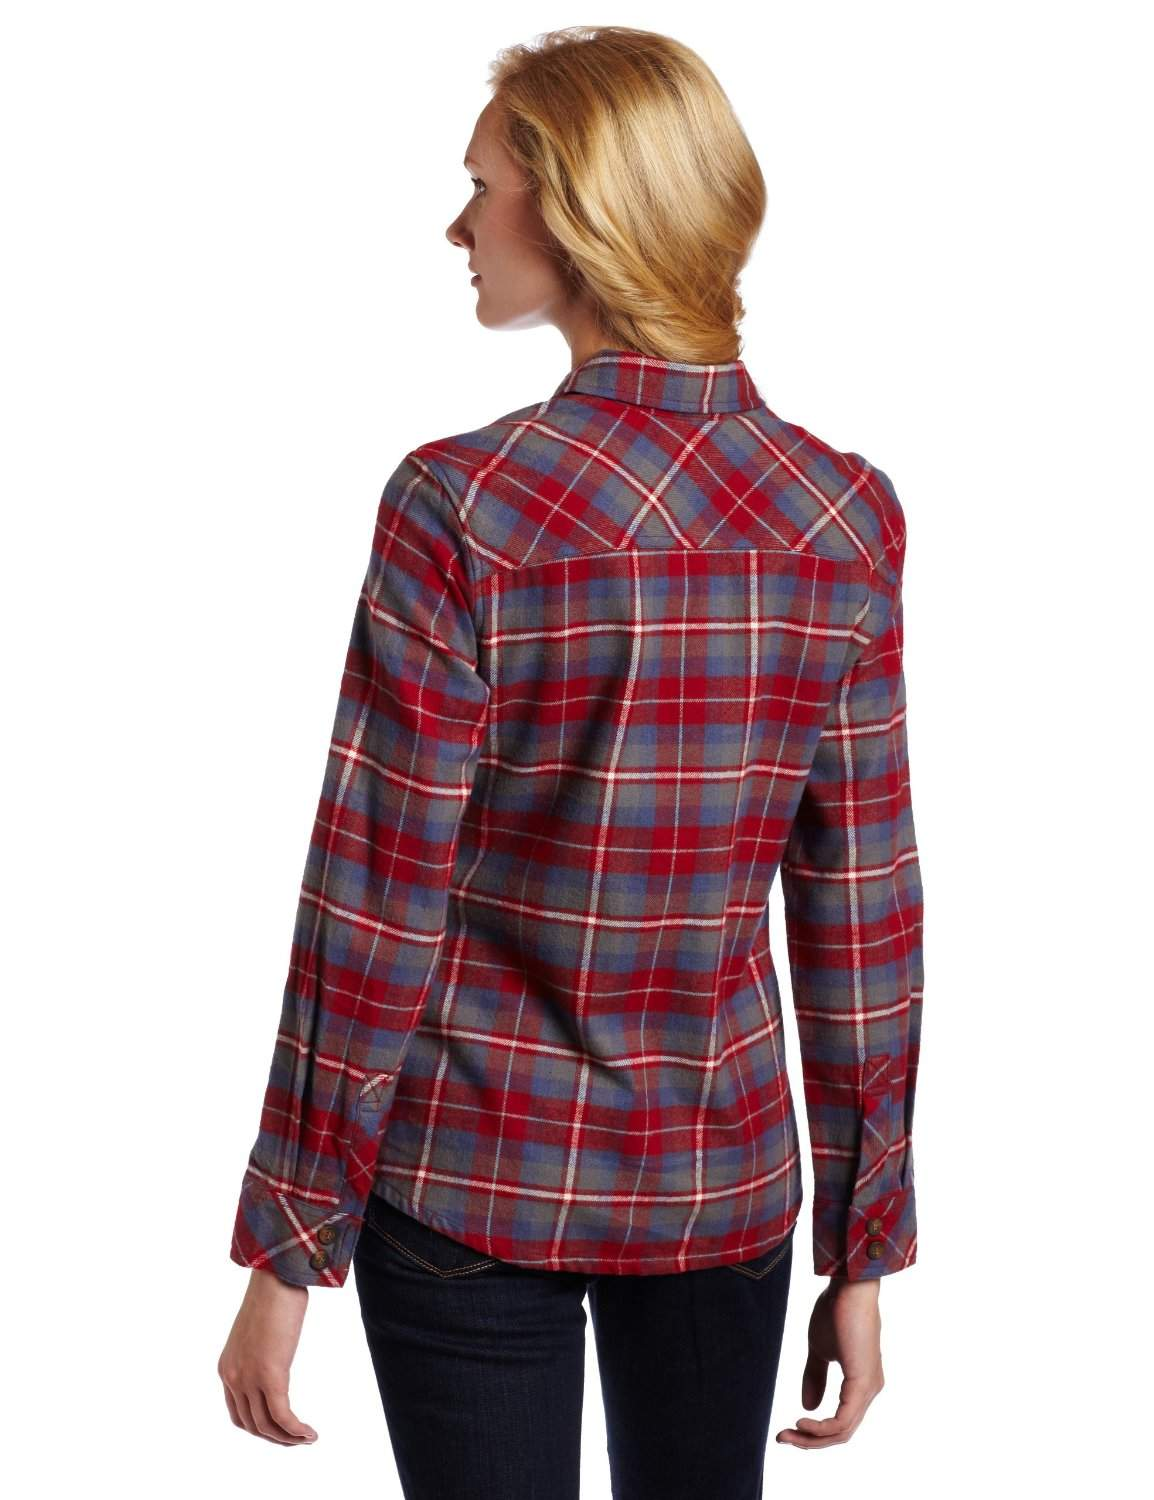 This heavyweight % organic cotton flannel shirt is built for the season when north swells roll and snowflakes fly. Made with a soft, long-staple % organic cotton that requires no synthetic chemicals or fertilizers to grow, it has all of a flannel's comfort but with a more substantial feel.